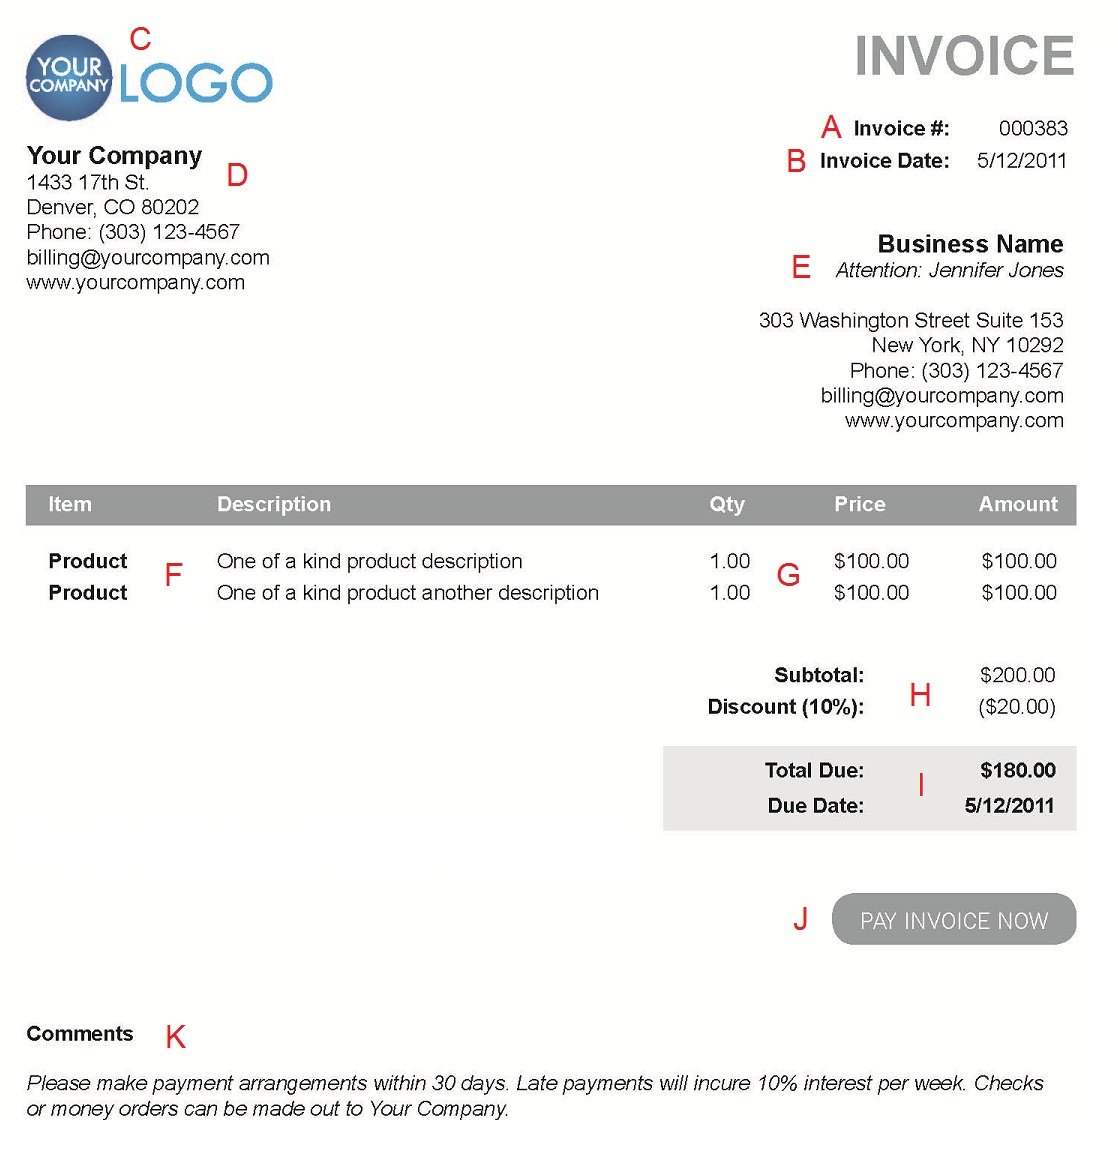 Helpingtohealus  Marvellous The  Different Sections Of An Electronic Payment Invoice With Lovable A  With Delightful International Shipping Invoice Template Also Ryder Online Invoice In Addition Requirements For An Invoice And New Car Factory Invoice As Well As Invoice Template For Designers Additionally Proforma Invoice For Services From Paysimplecom With Helpingtohealus  Lovable The  Different Sections Of An Electronic Payment Invoice With Delightful A  And Marvellous International Shipping Invoice Template Also Ryder Online Invoice In Addition Requirements For An Invoice From Paysimplecom